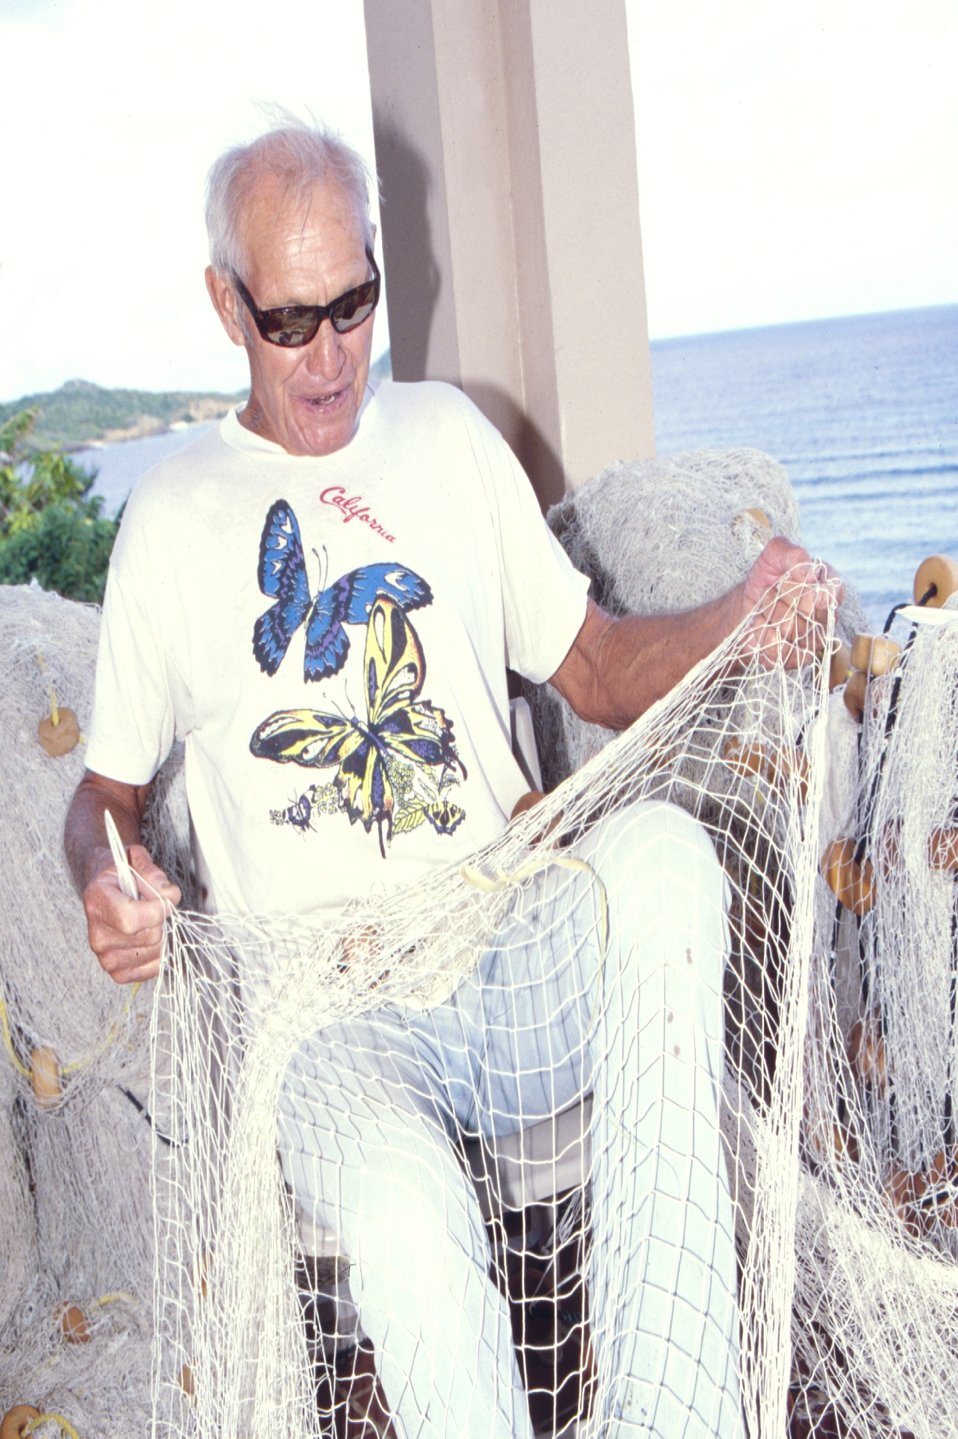 Joe LaPlace mending a net at St. Thomas, U.S. Virgin Islands.